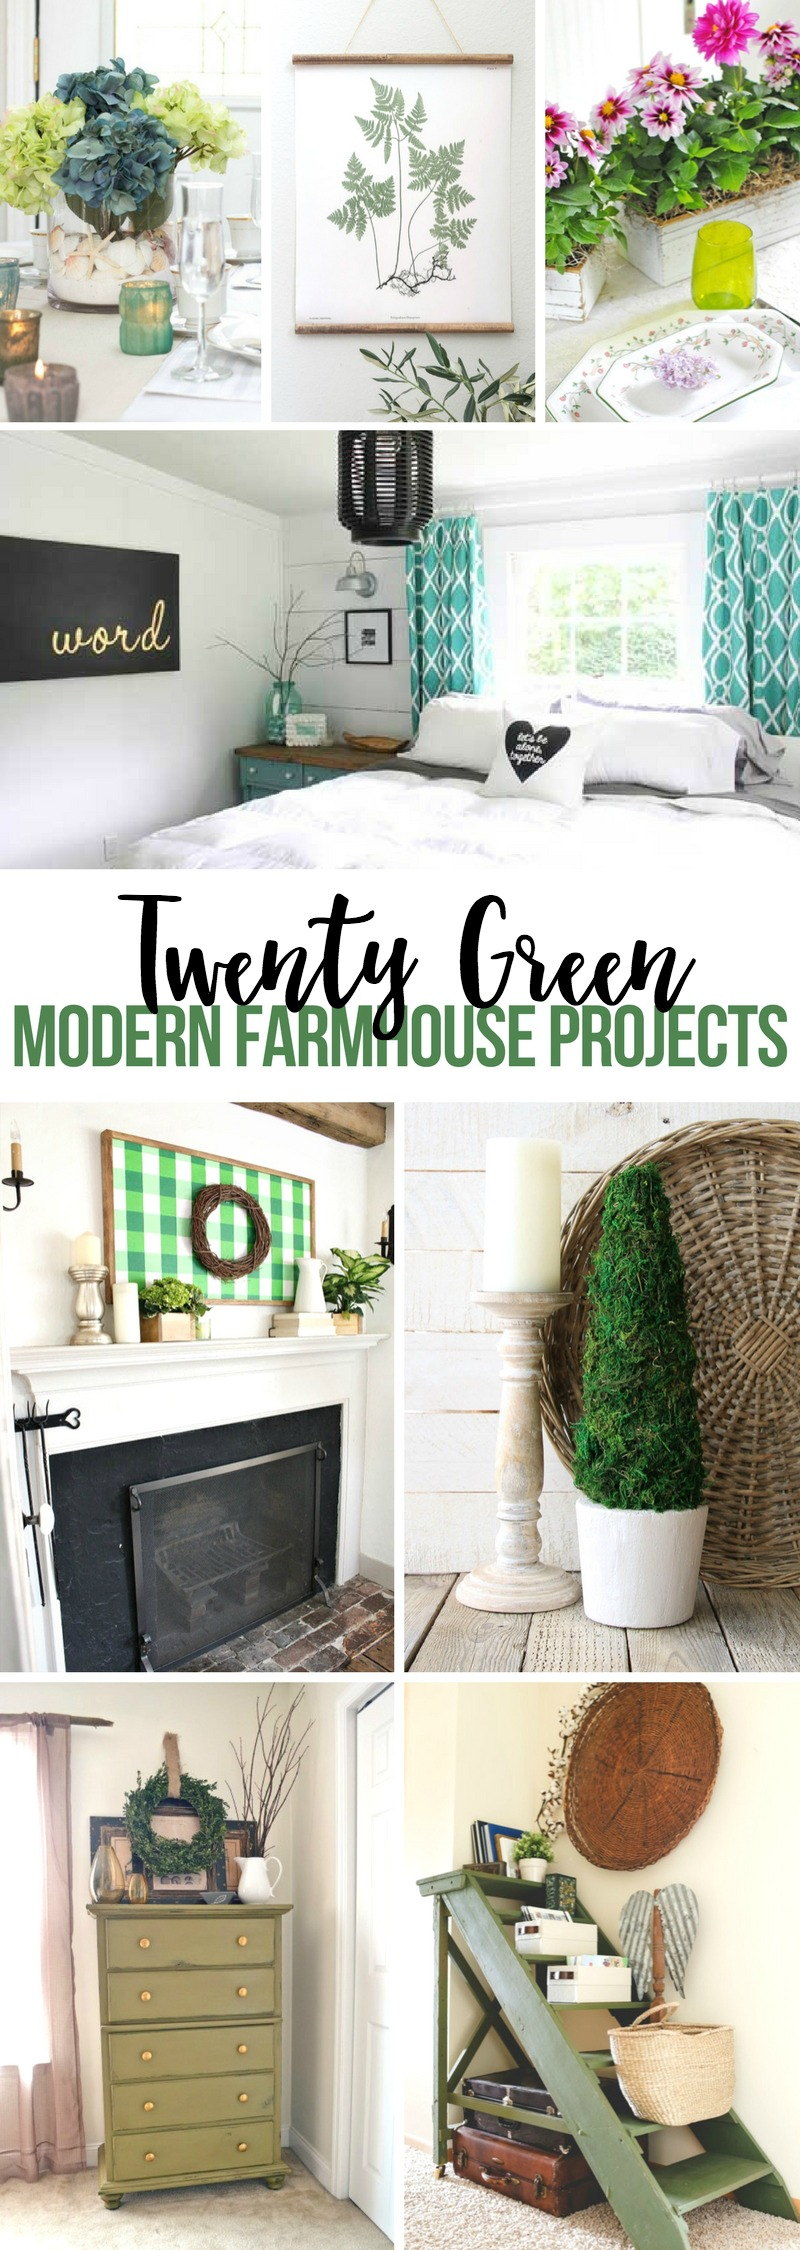 Green Modern Farmhouse Projects